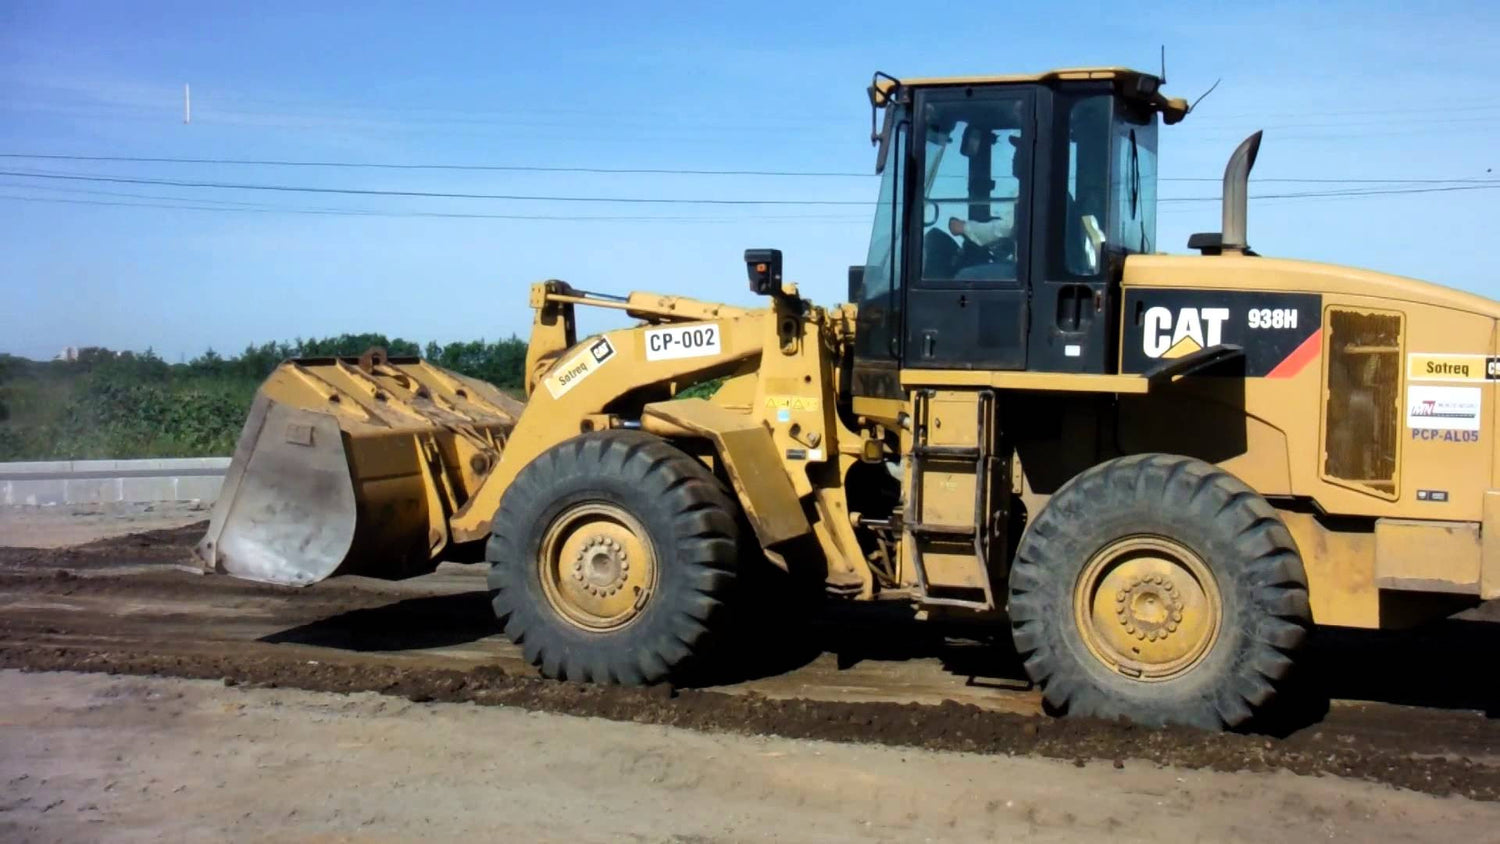 Cat 216b Wiring Diagram Free Download Diagrams 268b Caterpillar 938h And It38h Wheel Loader Electrical System At Ptc